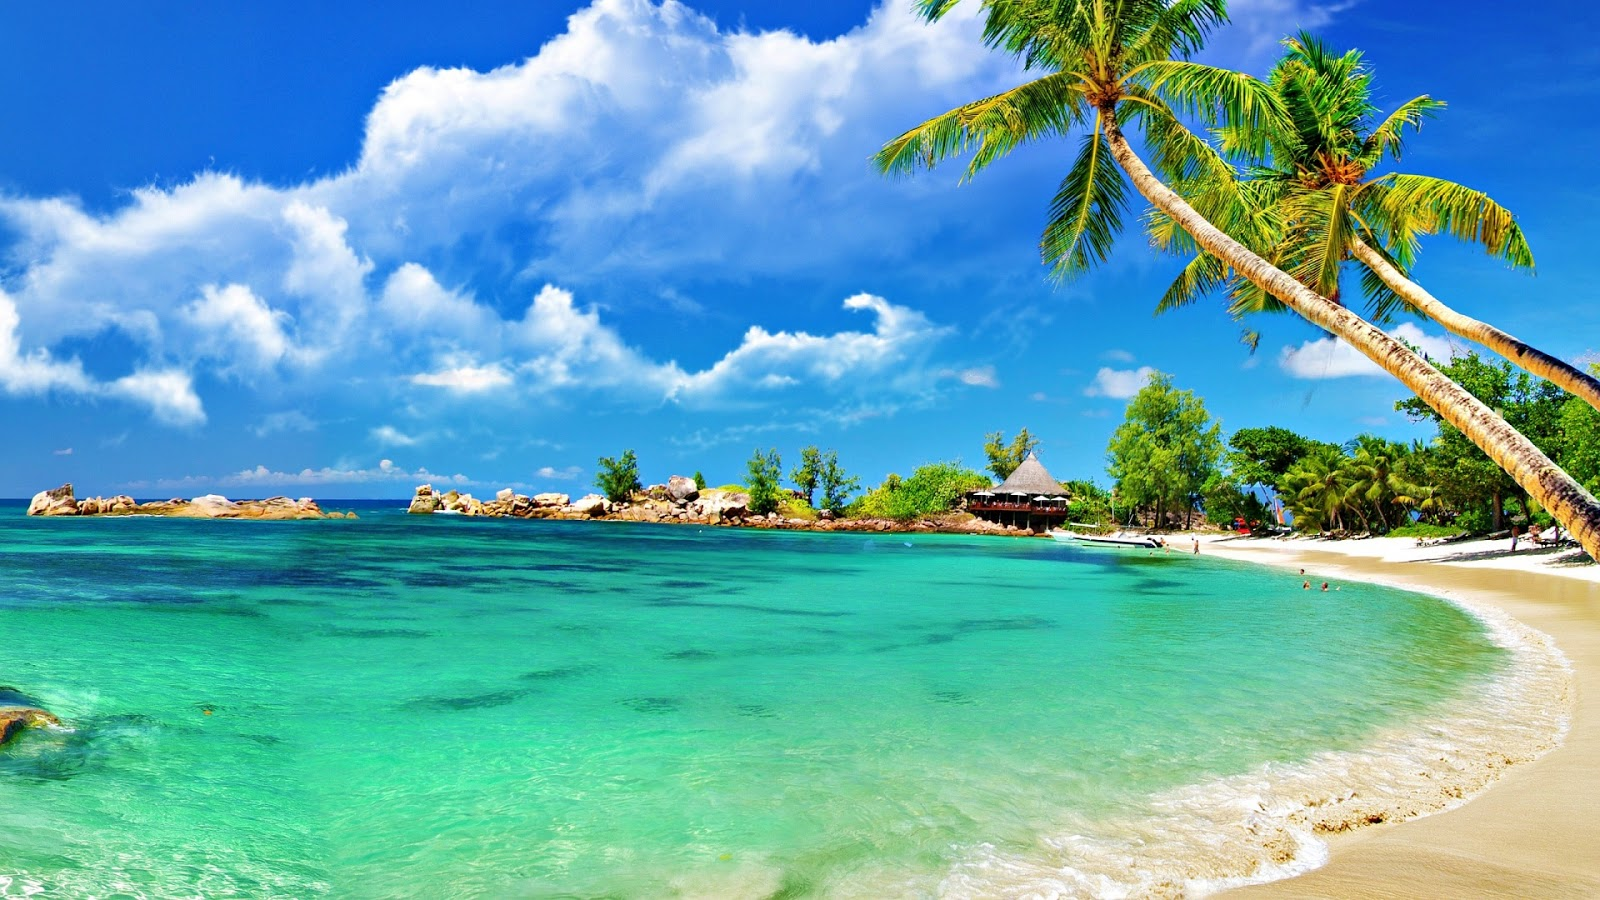 Hd Tropical Island Beach Paradise Wallpapers And Backgrounds: Tropical-Palm-beach-1920x1080